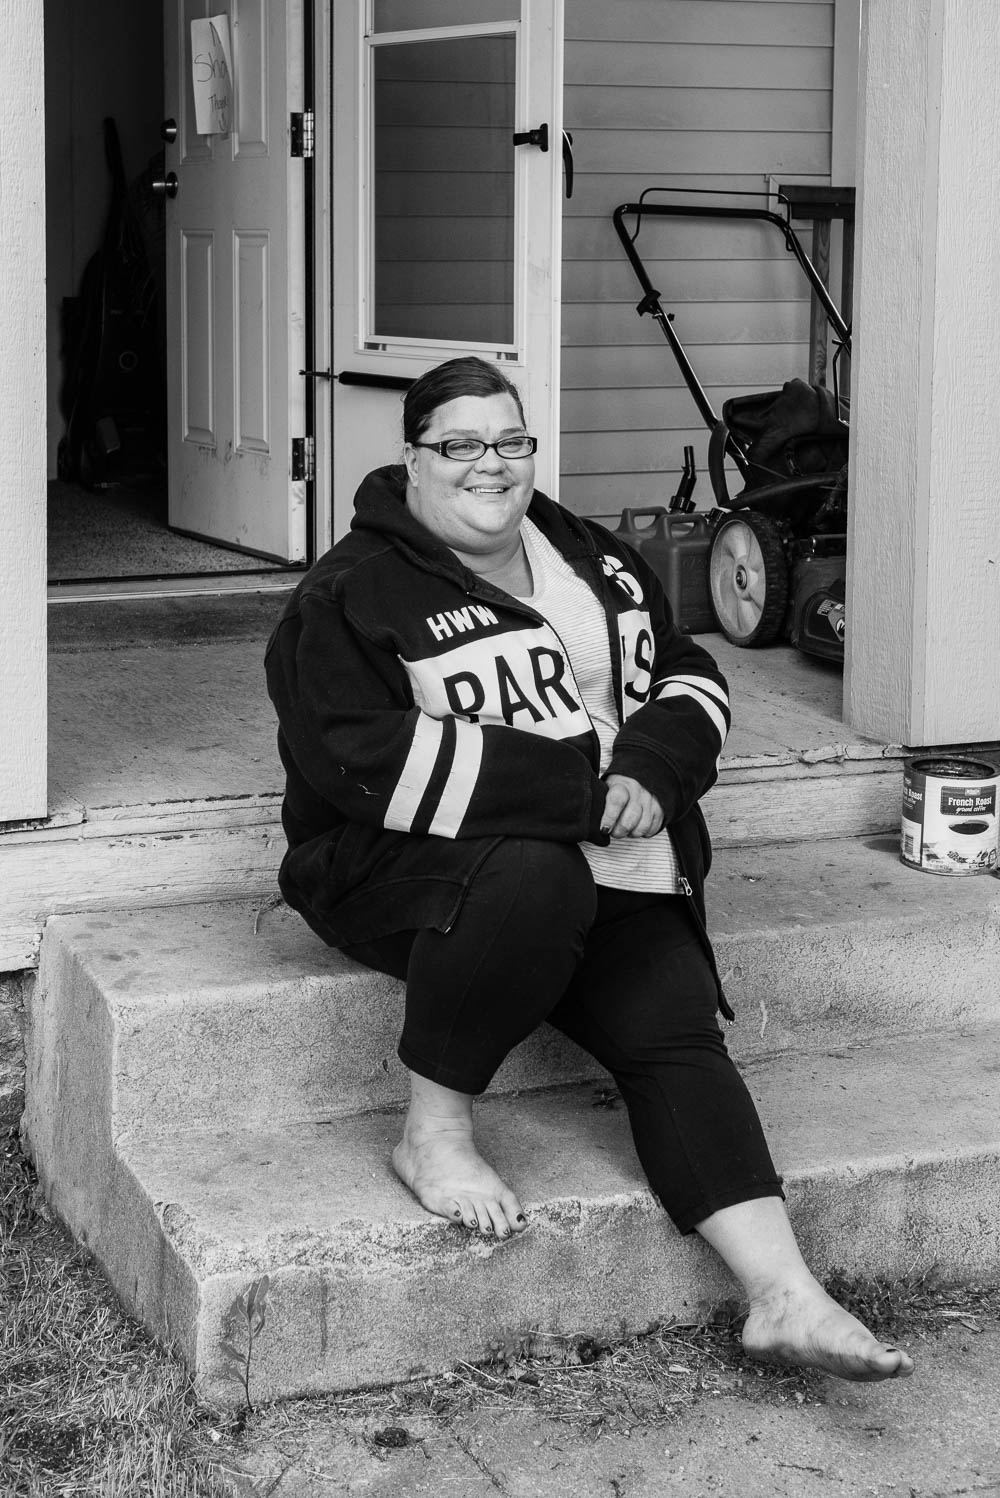 Traci now owns her own home. She counsels homeless veterans and people addicted to drugs. She also works as an apartment manager.